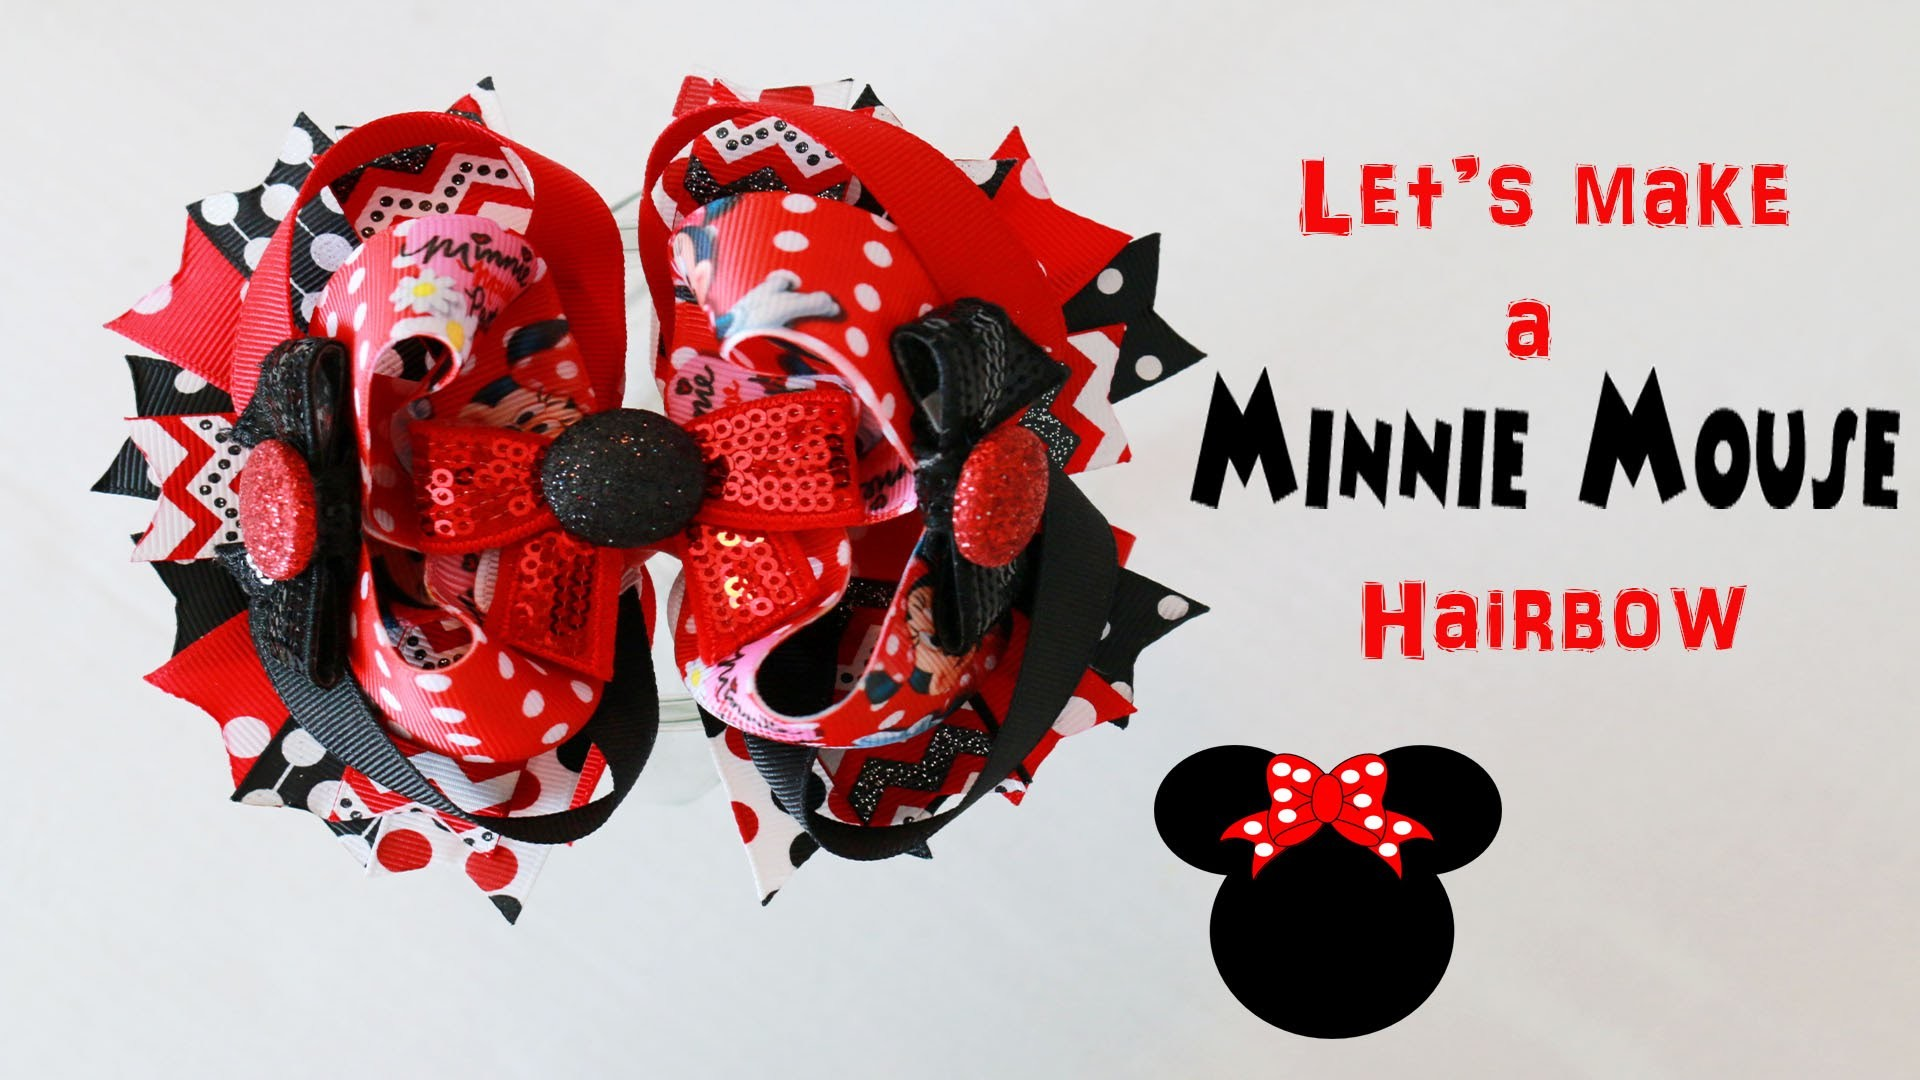 HOW TO: Let's make a MINNIE MOUSE hairbow!. Bow A LONG